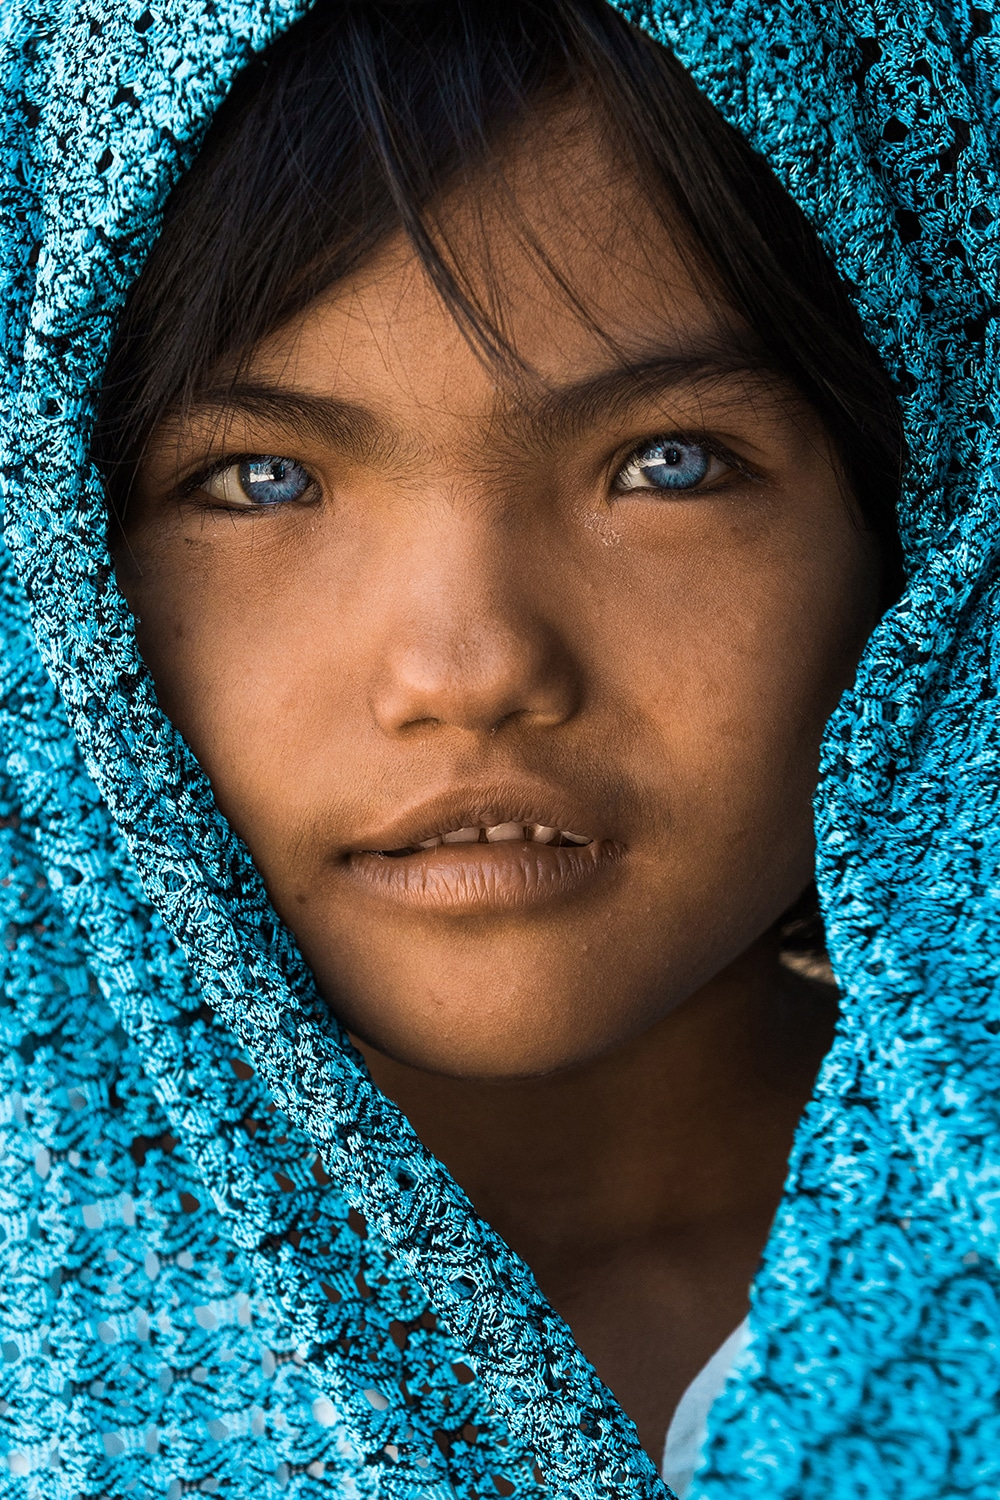 Child from the Cham Ethnic Tribe in Vietnam